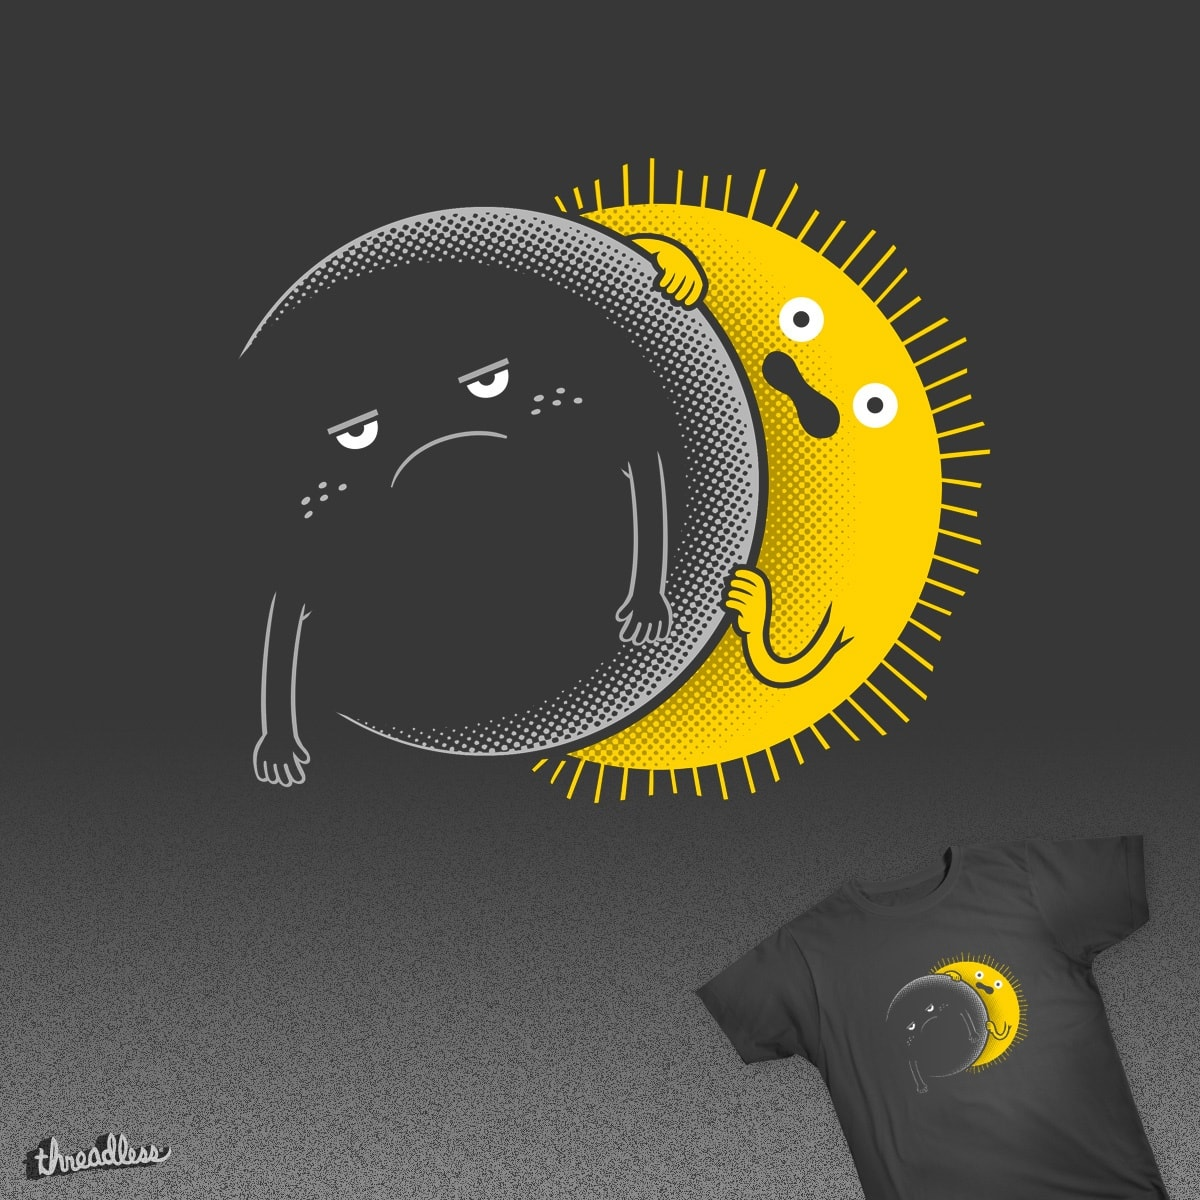 Eclipse by Benjidojo on Threadless